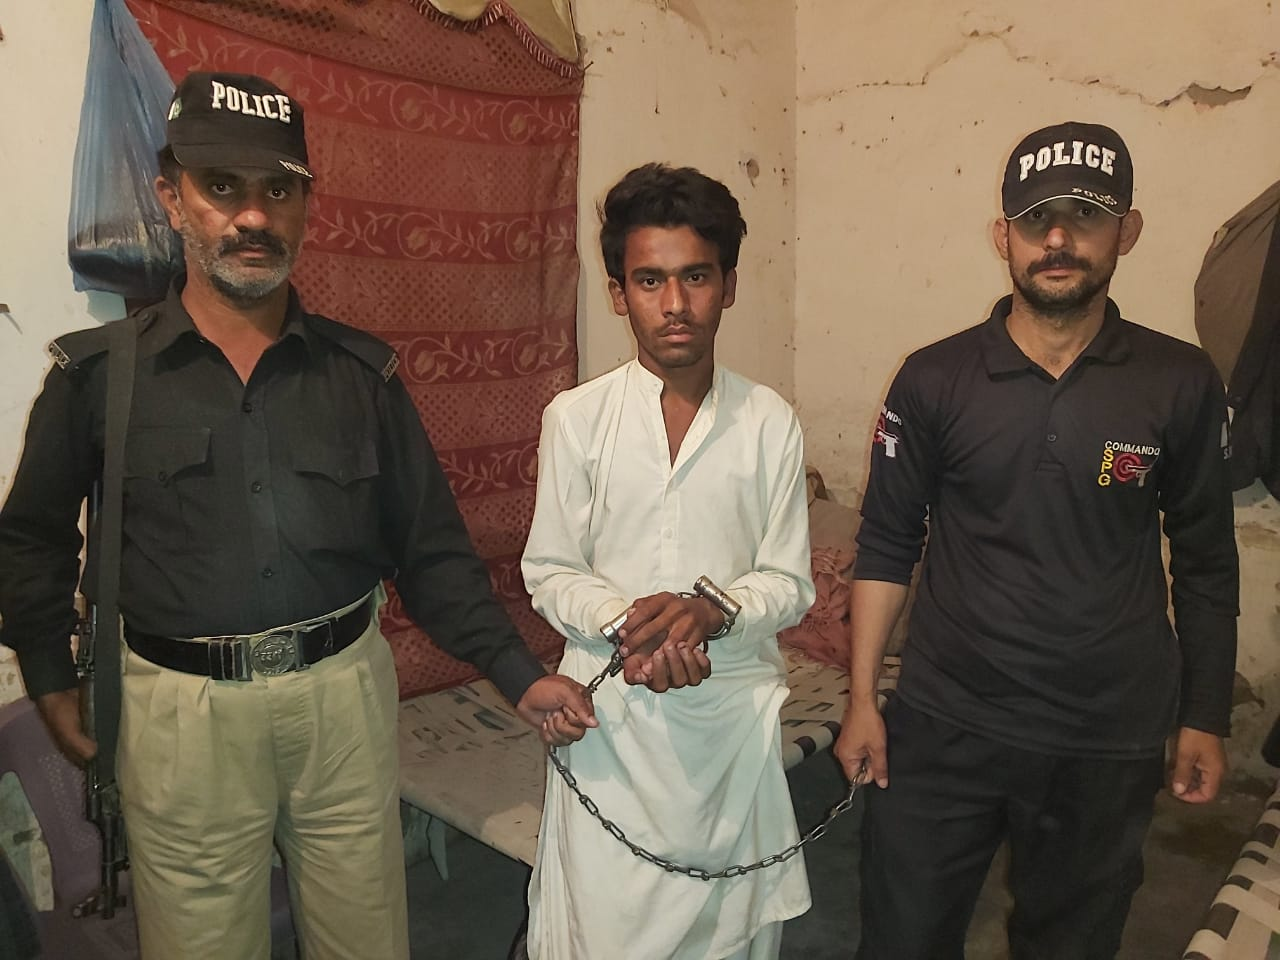 4-year baby's rape case SHC summons DC SSP Dadu - Accused in Police custody - Sindh Courier